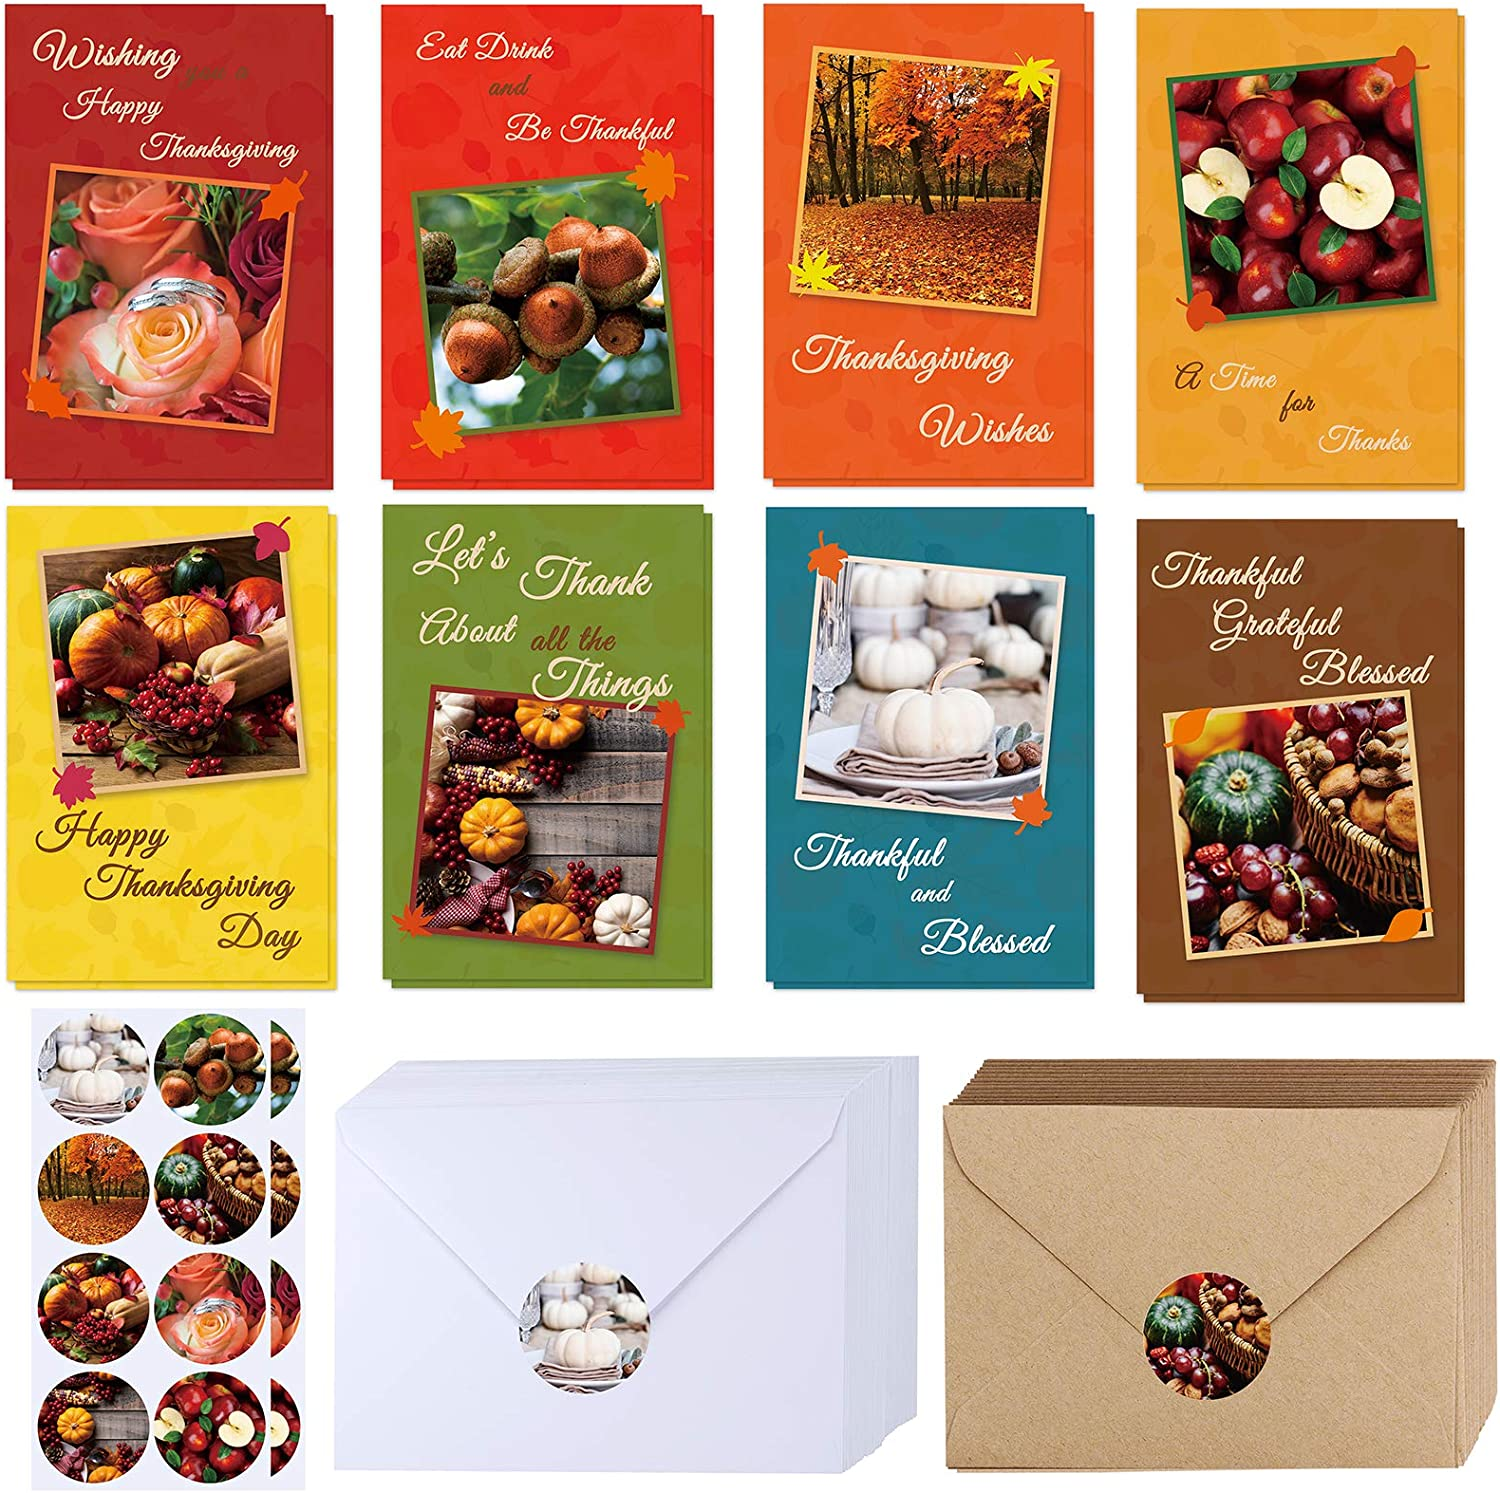 120 Sets Bulk Blank Thanksgiving Cards with Envelopes Stickers Assortment 8 Design of Fall Pumpkin Leaf Photos Thank You Greeting Cards Note Cards for Fall Wedding Shower Thanksgiving Harvest Party